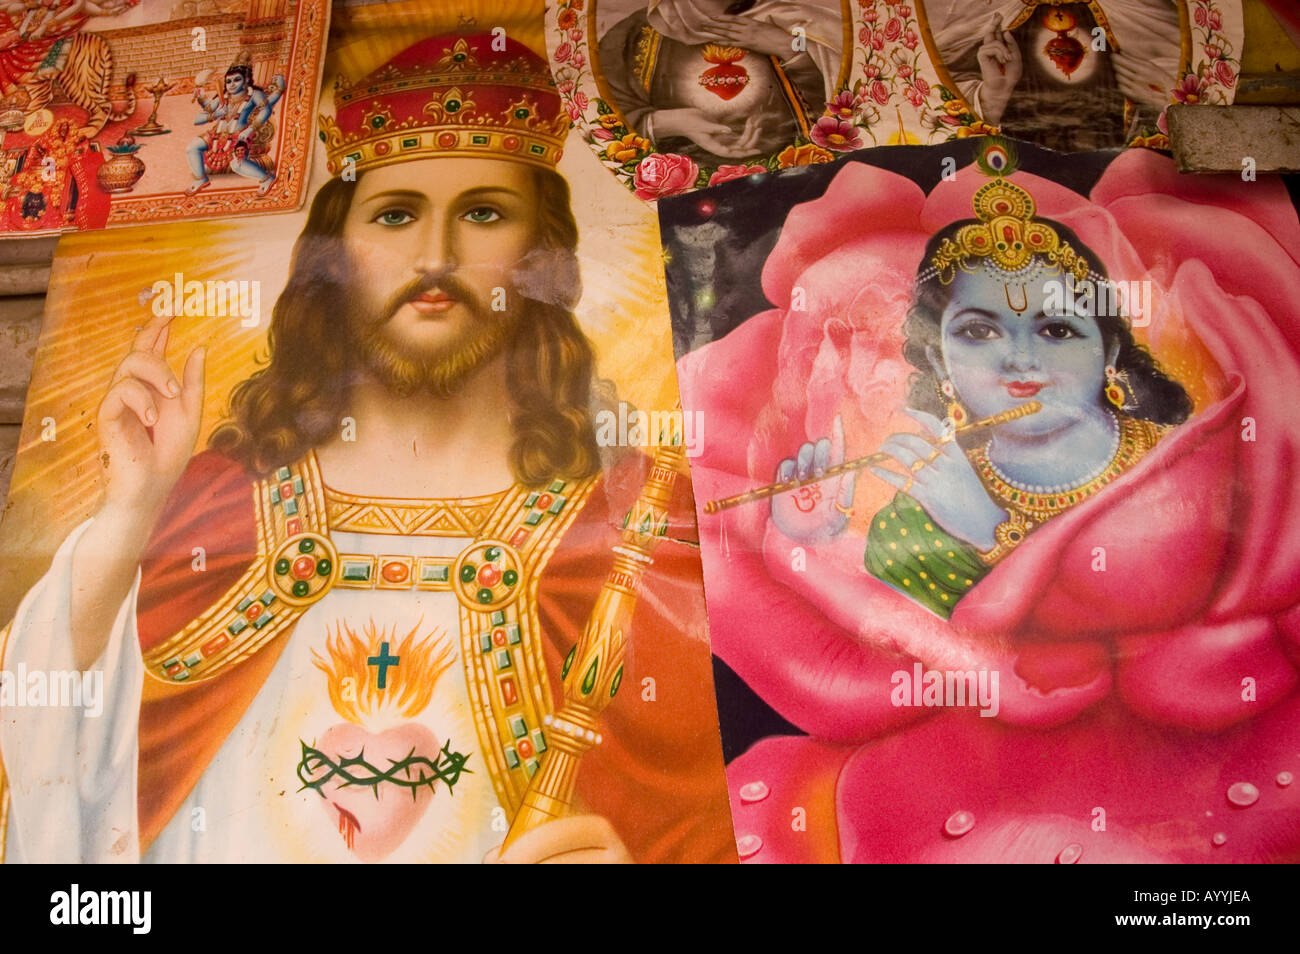 indian religious poster of jesus christ and lord krishna stock